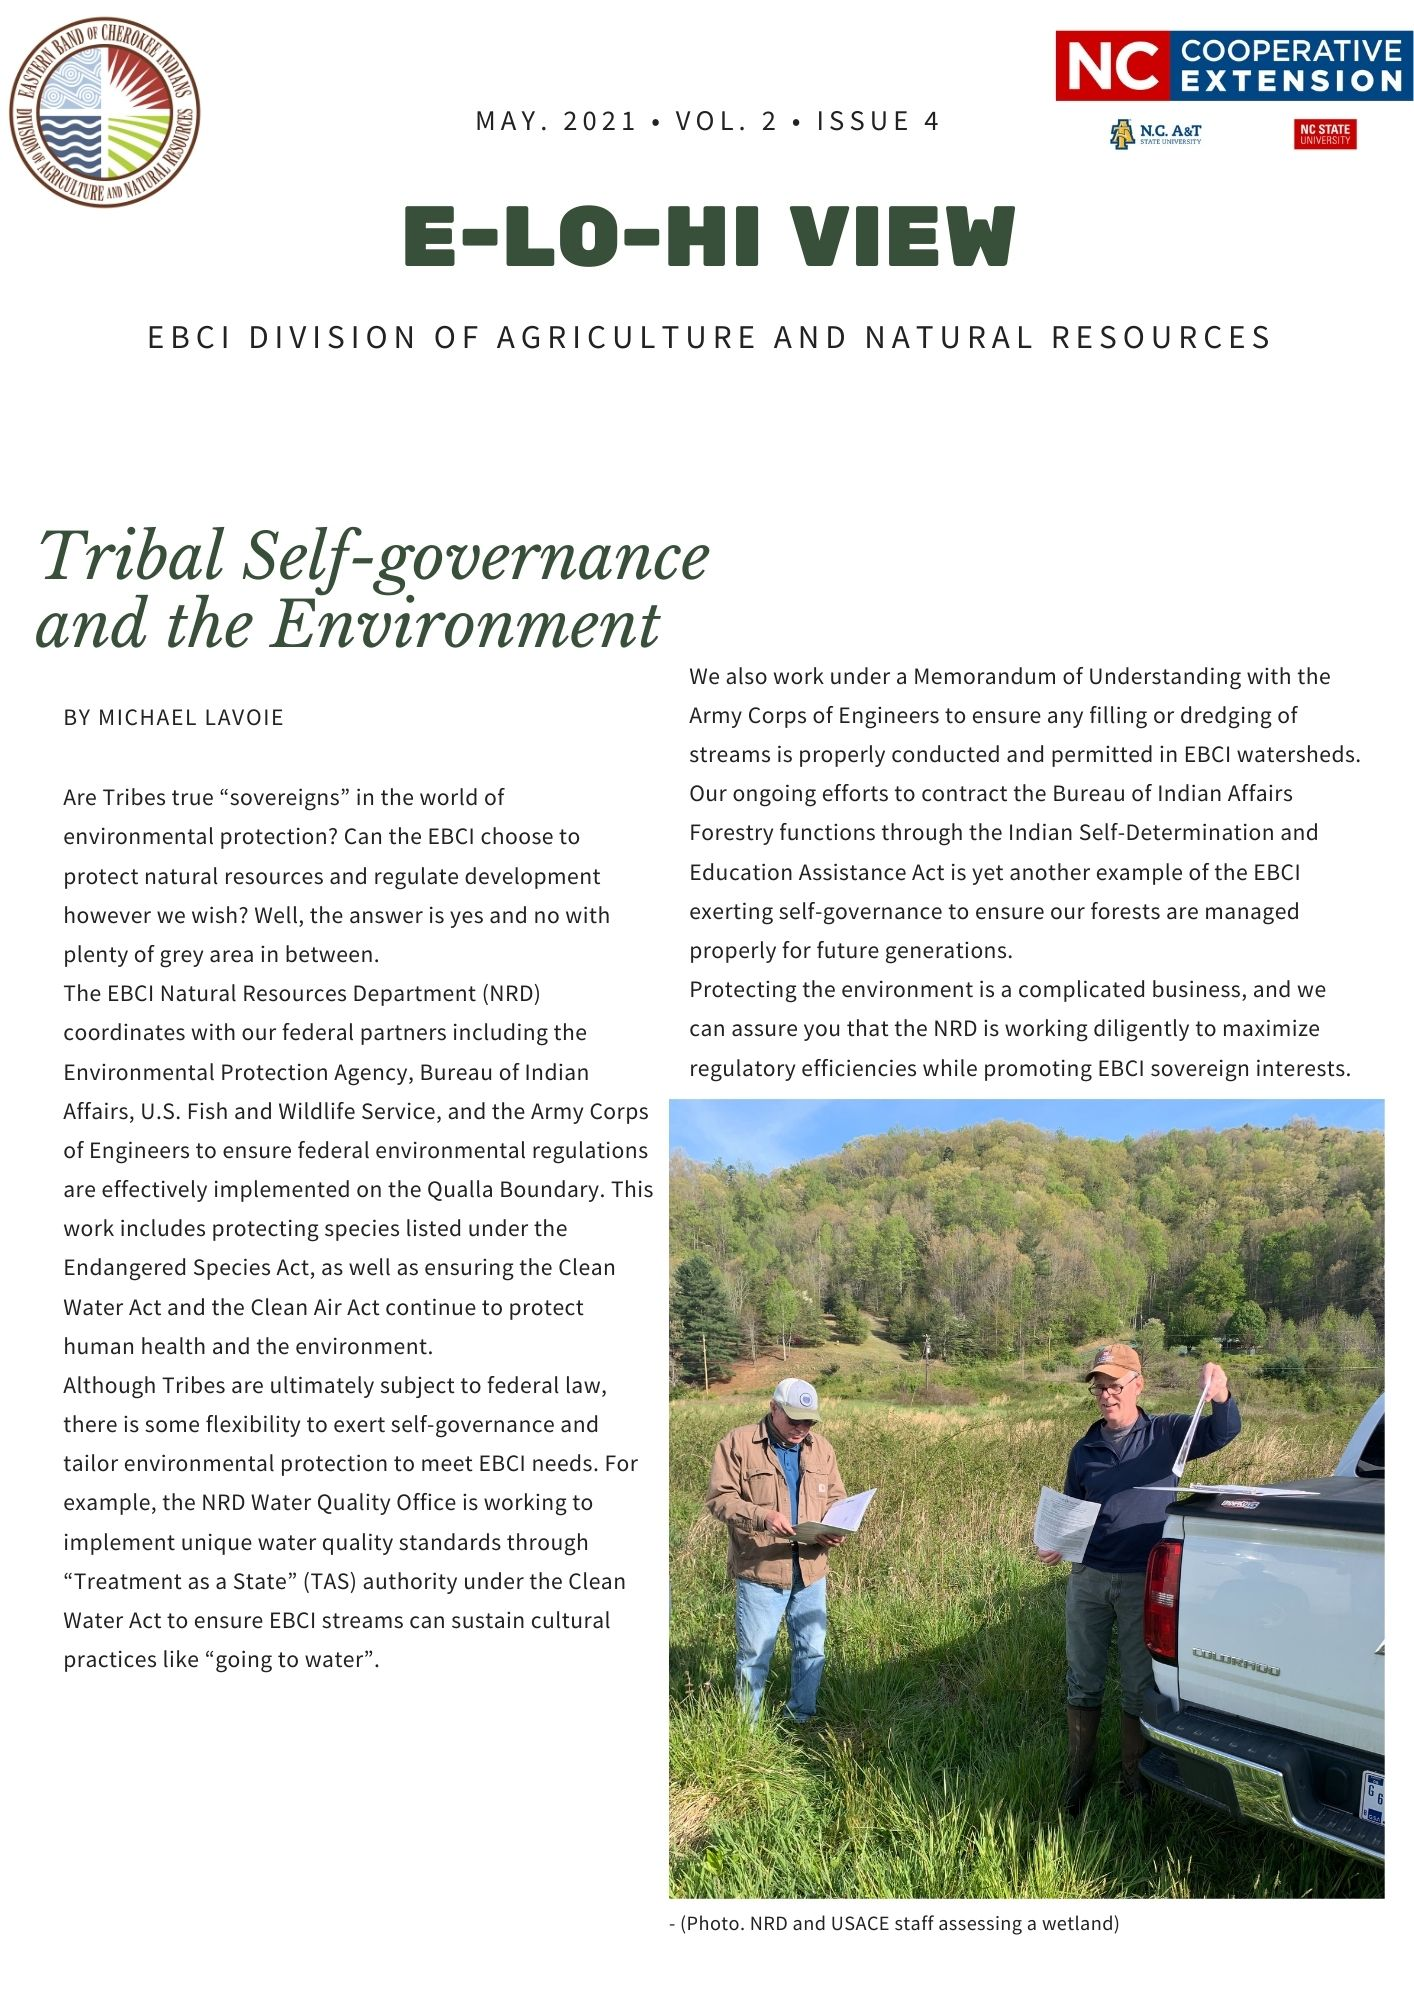 """Tribal Self-governance and the Environment Are Tribes true """"sovereigns"""" in the world of environmental protection? Can the EBCI choose to protect natural resources and regulate development however we wish? Well, the answer is yes and no with plenty of grey area in between. The EBCI Natural Resources Department (NRD) coordinates with our federal partners including the Environmental Protection Agency, Bureau of Indian Affairs, U.S. Fish and Wildlife Service, and the Army Corps of Engineers to ensure federal environmental regulations are effectively implemented on the Qualla Boundary. This work includes protecting species listed under the Endangered Species Act, as well as ensuring the Clean Water Act and the Clean Air Act continue to protect human health and the environment. Although Tribes are ultimately subject to federal law, there is some flexibility to exert self-governance and tailor environmental protection to meet EBCI needs. For example, the NRD Water Quality Office is working to implement unique water quality standards through """"Treatment as a State"""" (TAS) authority under the Clean Water Act to ensure EBCI streams can sustain cultural practices like """"going to water"""". We also work under a Memorandum of Understanding with the Army Corps of Engineers to ensure any filling or dredging of streams is properly conducted and permitted in EBCI watersheds. Our ongoing efforts to contract the Bureau of Indian Affairs Forestry functions through the Indian Self-Determination and Education Assistance Act is yet another example of the EBCI exerting self-governance to ensure our forests are managed properly for future generations. Protecting the environment is a complicated business, and we can assure you that the NRD is working diligently to maximize regulatory efficiencies while promoting EBCI sovereign interests."""